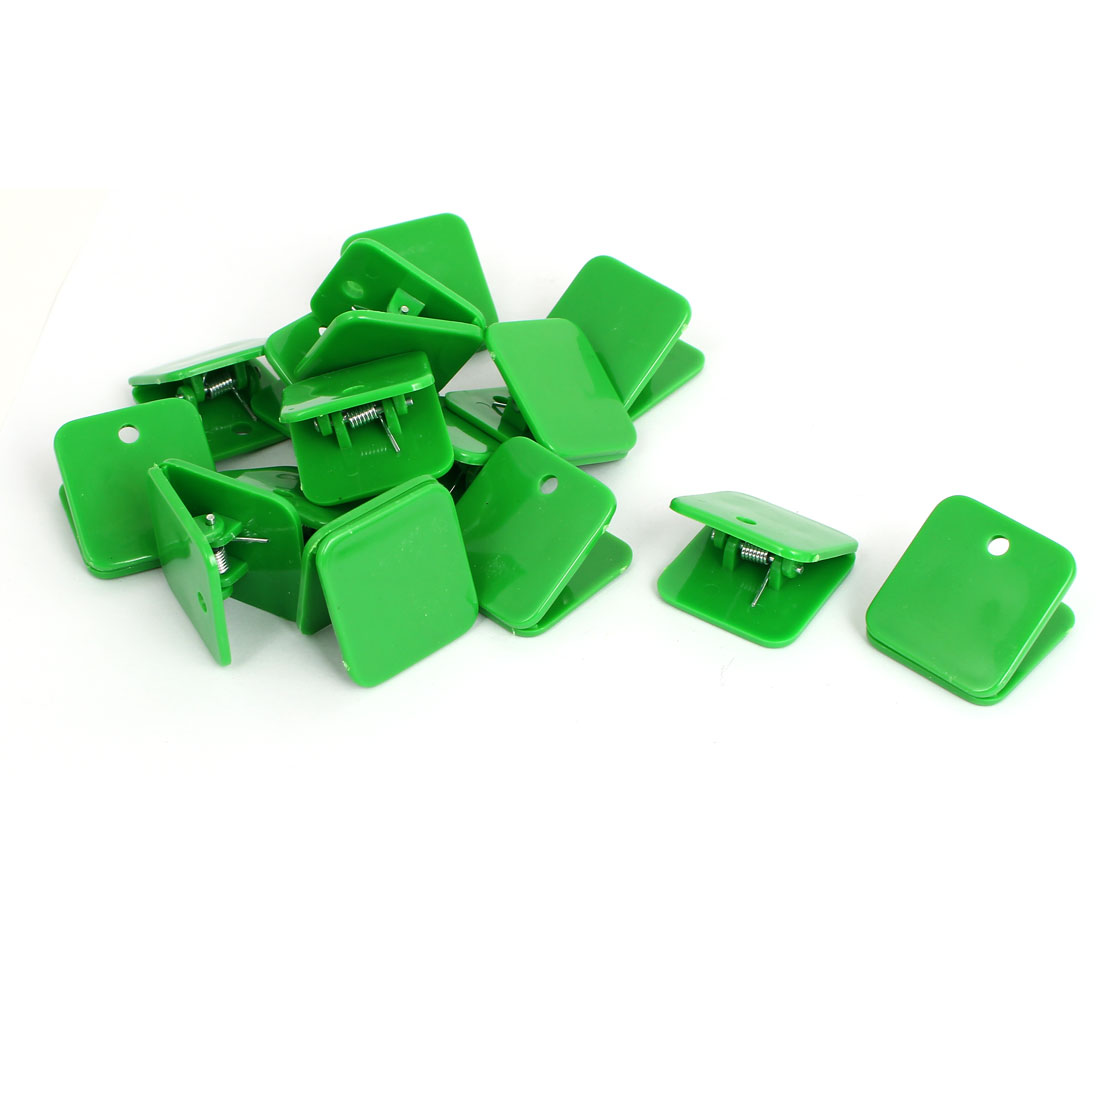 Plastic Square Spring Loaded Paper Document Memo Note Stationery Clip Green 15Pcs